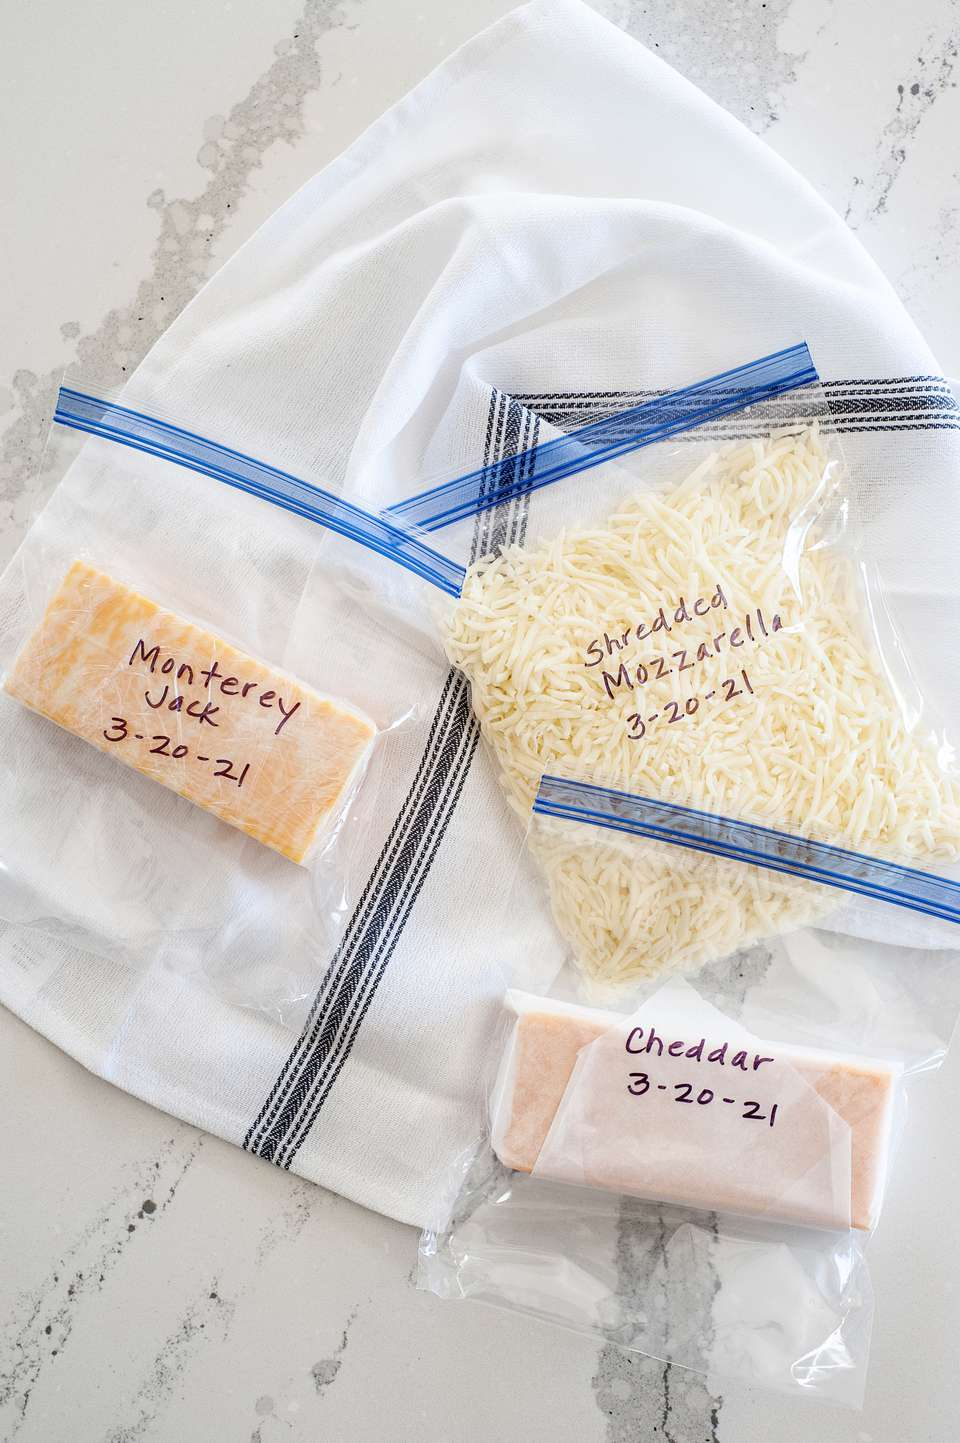 Cheese in ziplock bags to show how to freeze cheese.